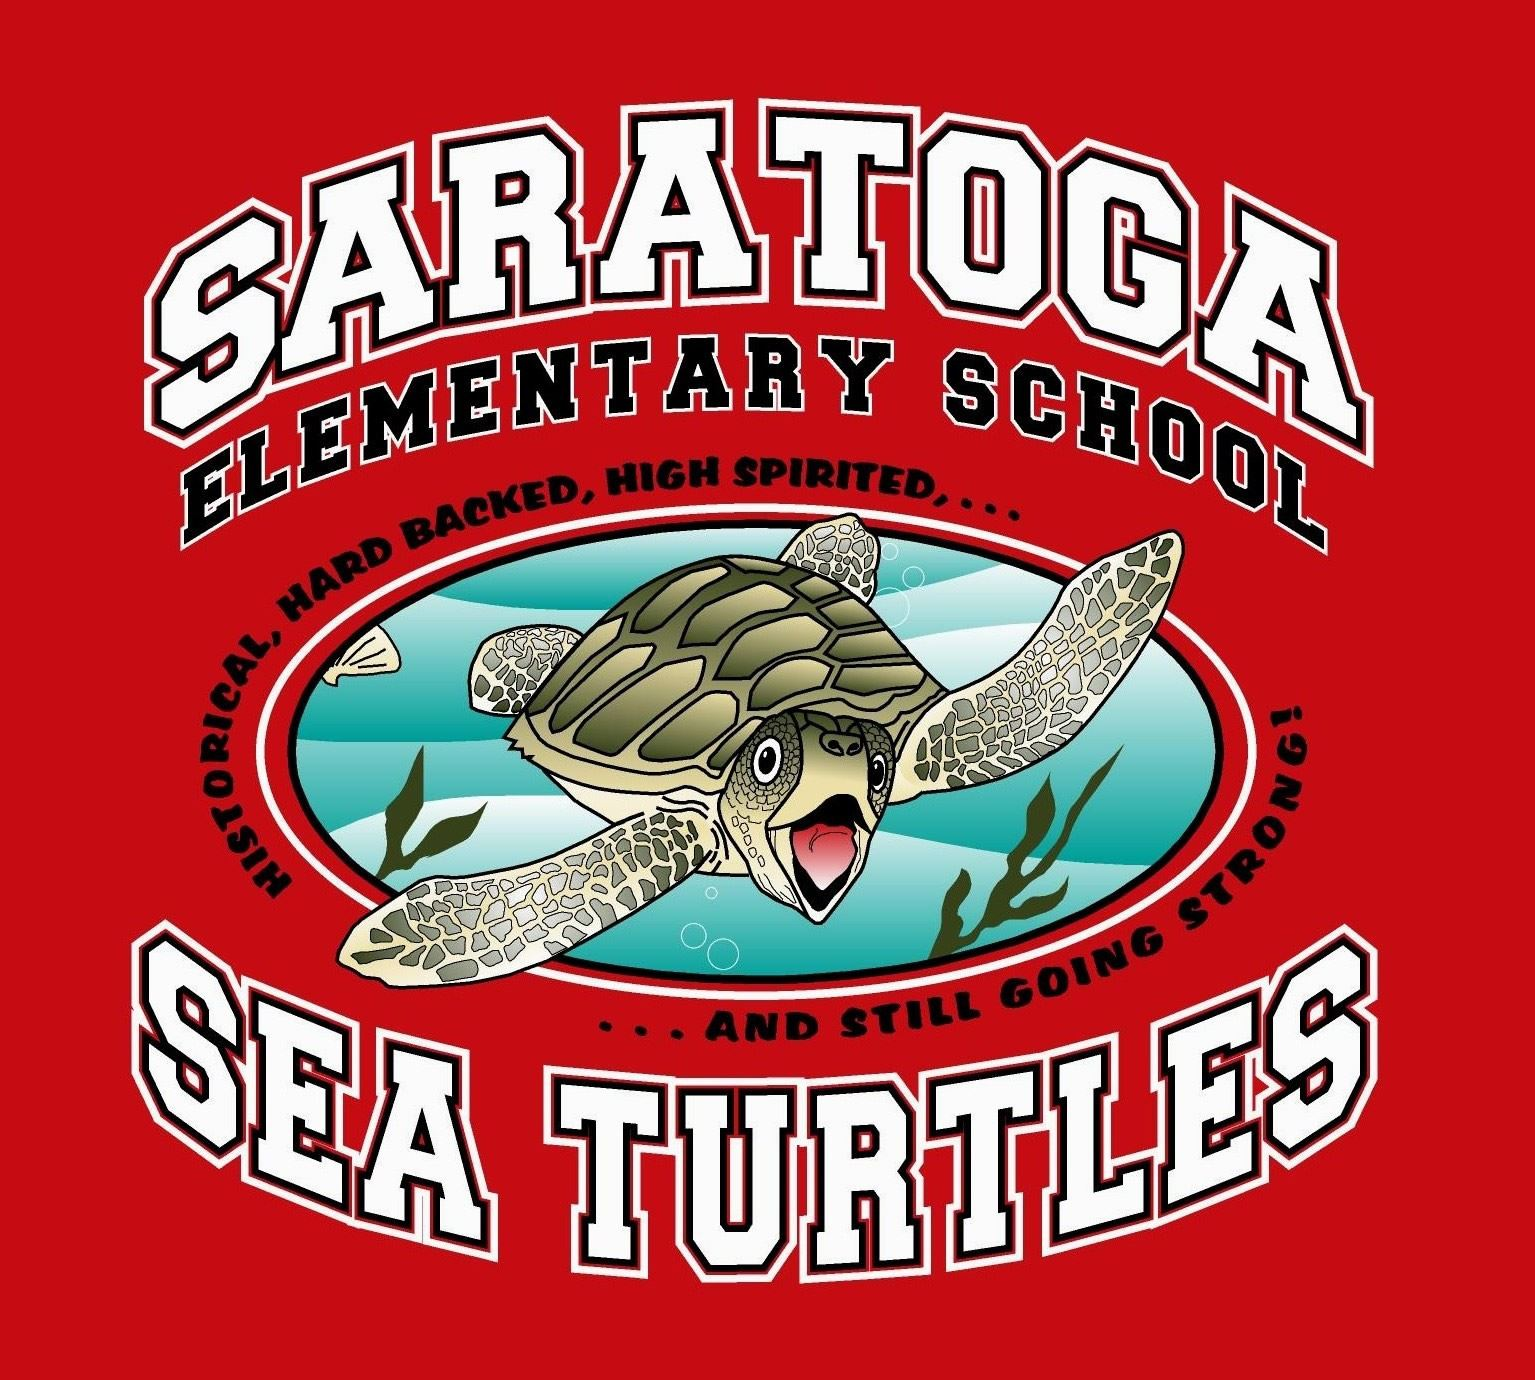 Saratoga Sea Turtles Class Background